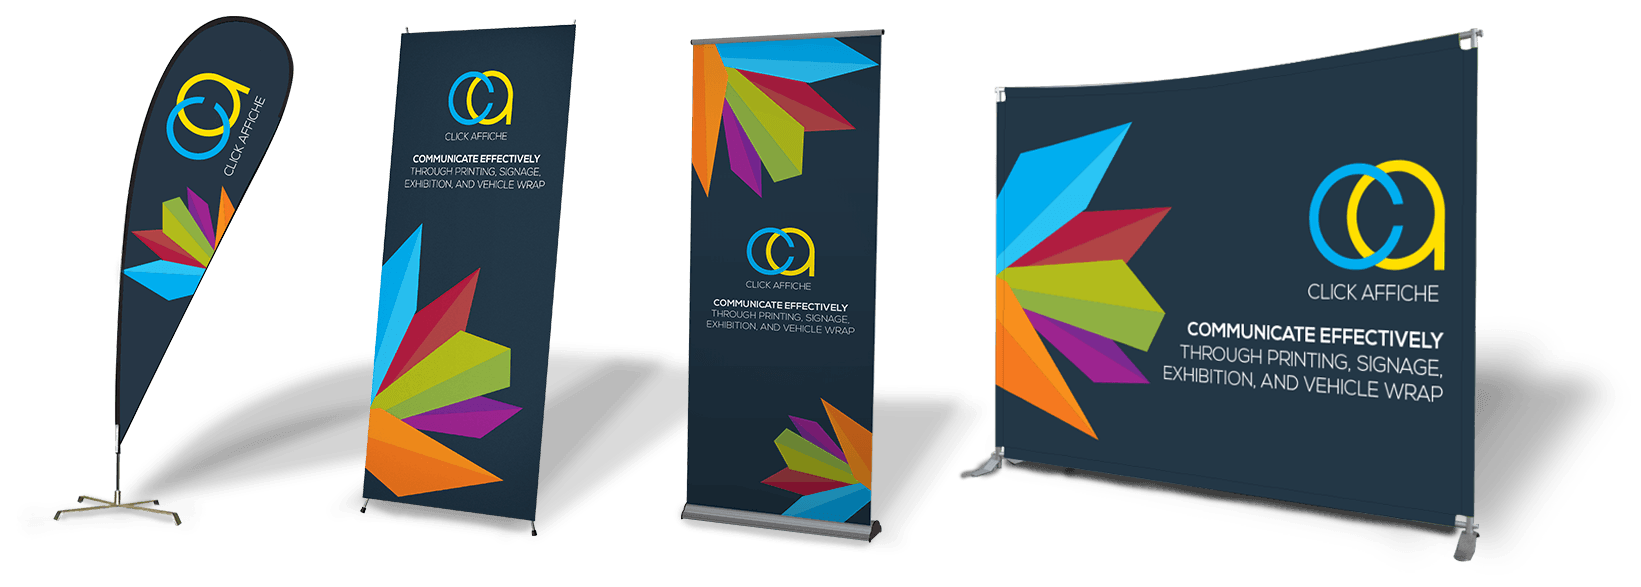 Cheap Pull Up Banners Exhibition Stands And Wide Roller Banners 24